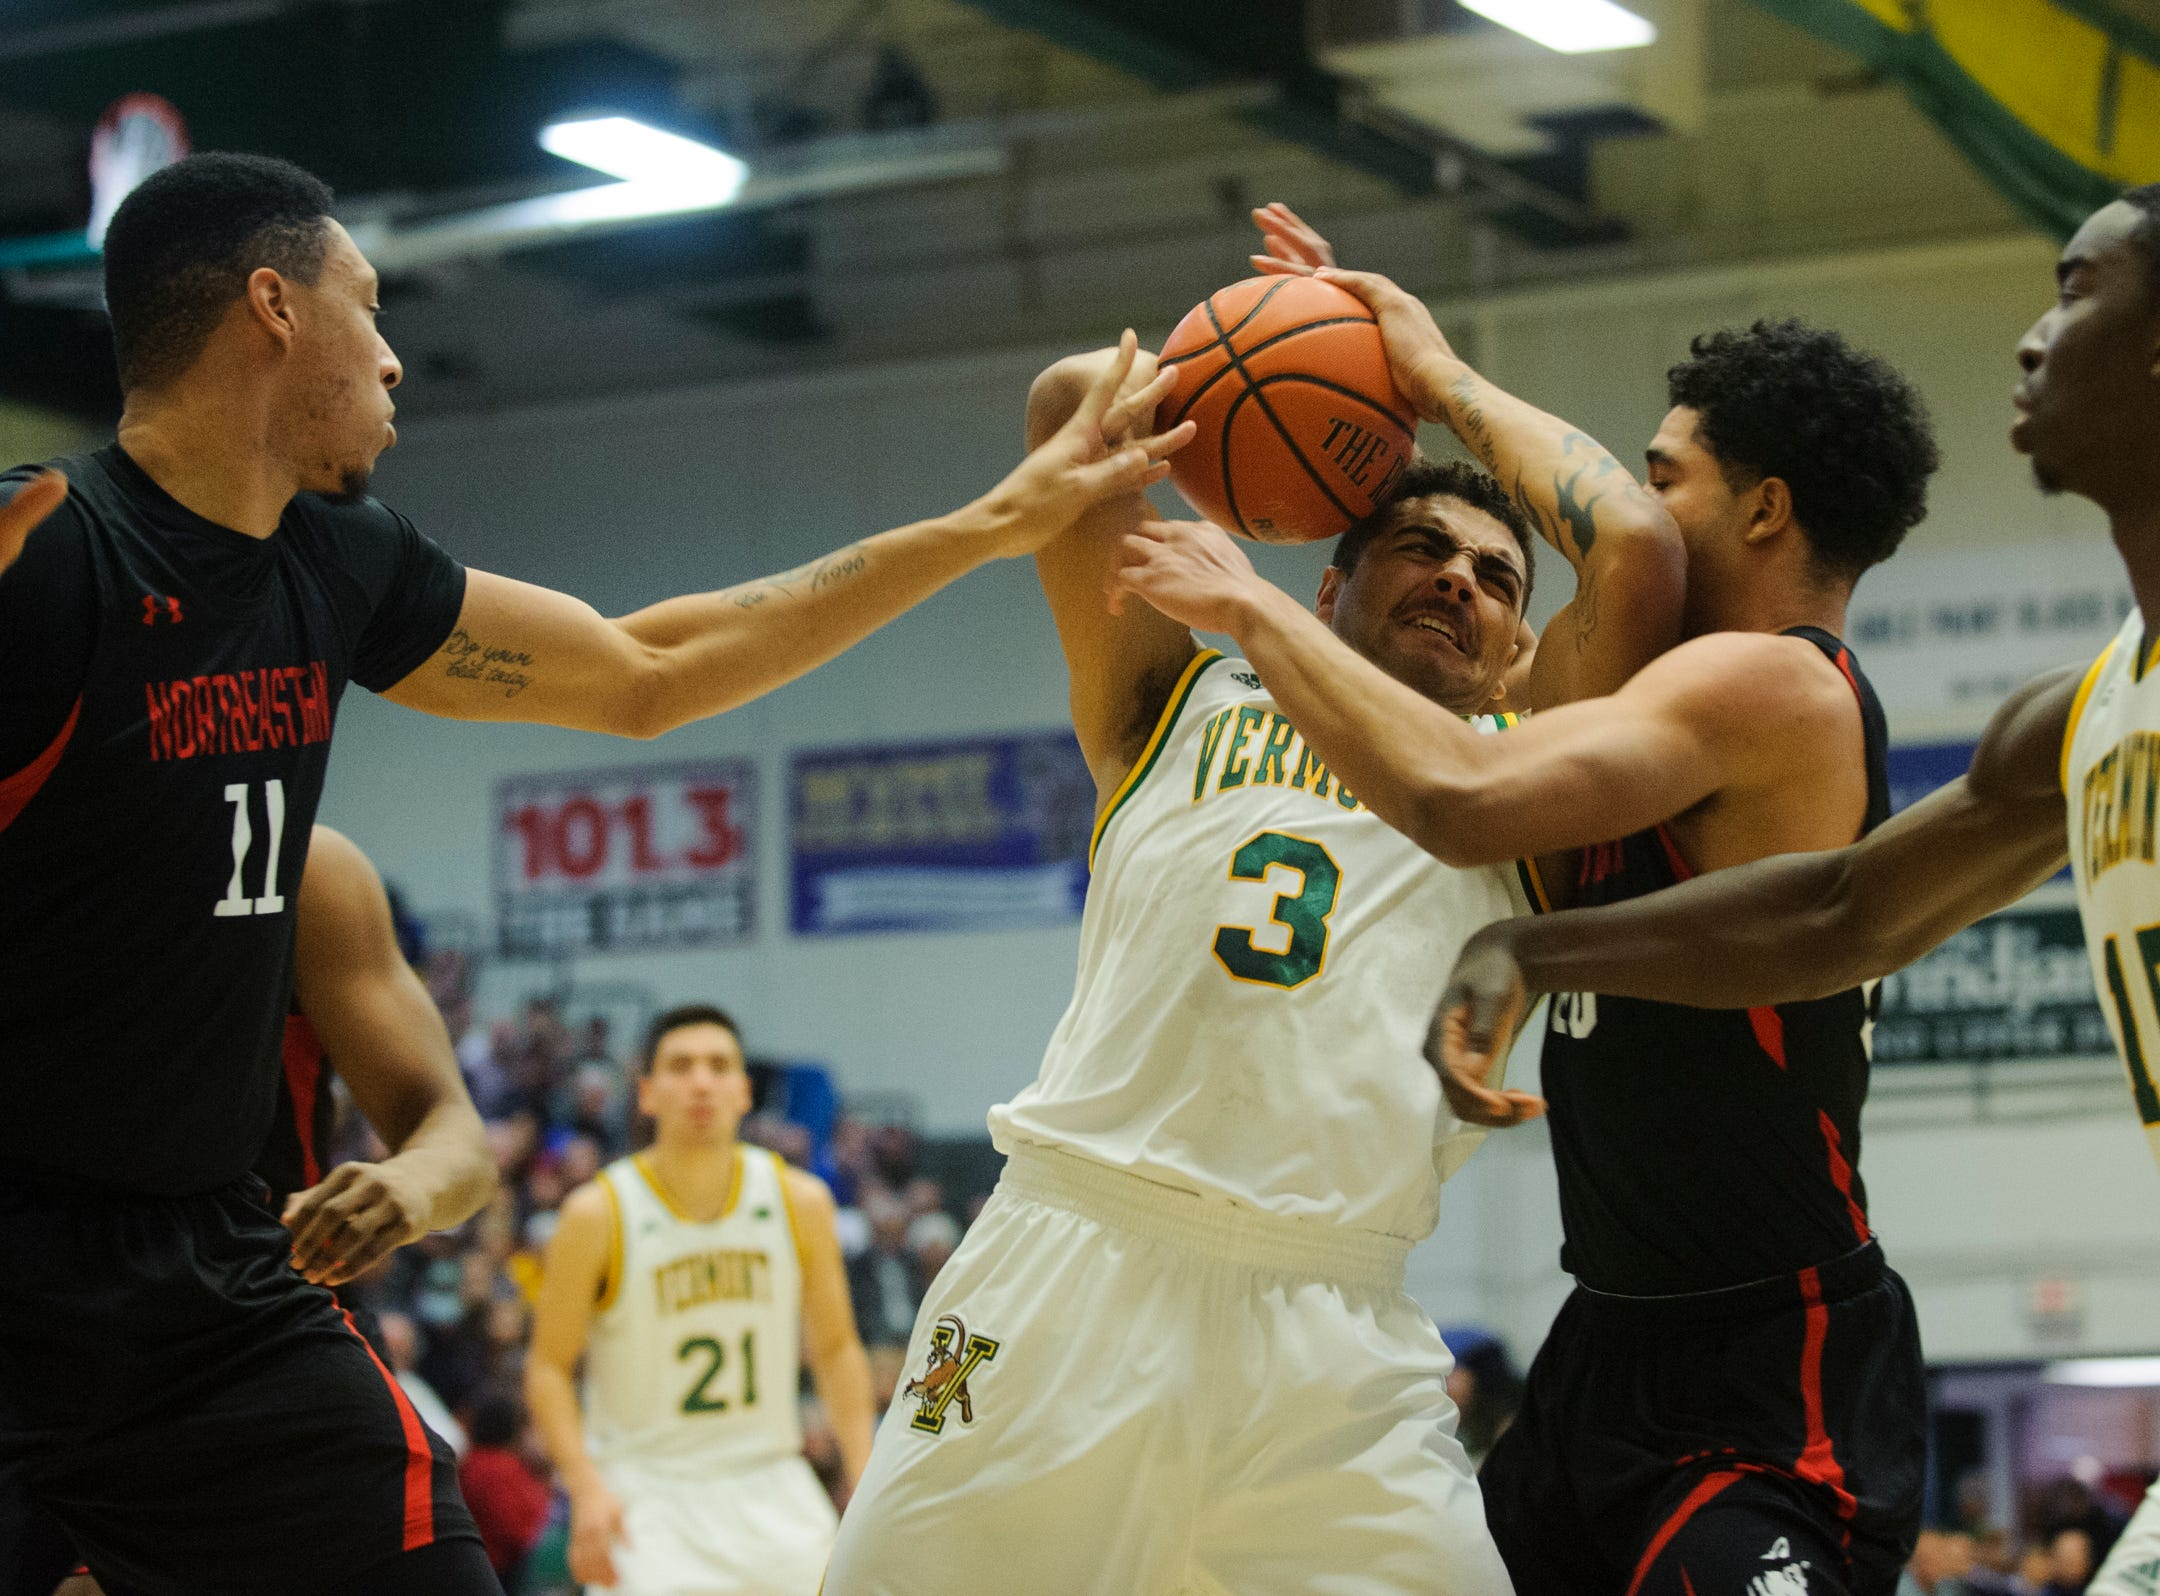 Vermont forward Anthony Lamb (3) fights for the ball during the men's basketball game between the Northeastern Huskies and the Vermont Catamounts at Patrick Gym on Sunday afternoon December 16, 2018 in Burlington.